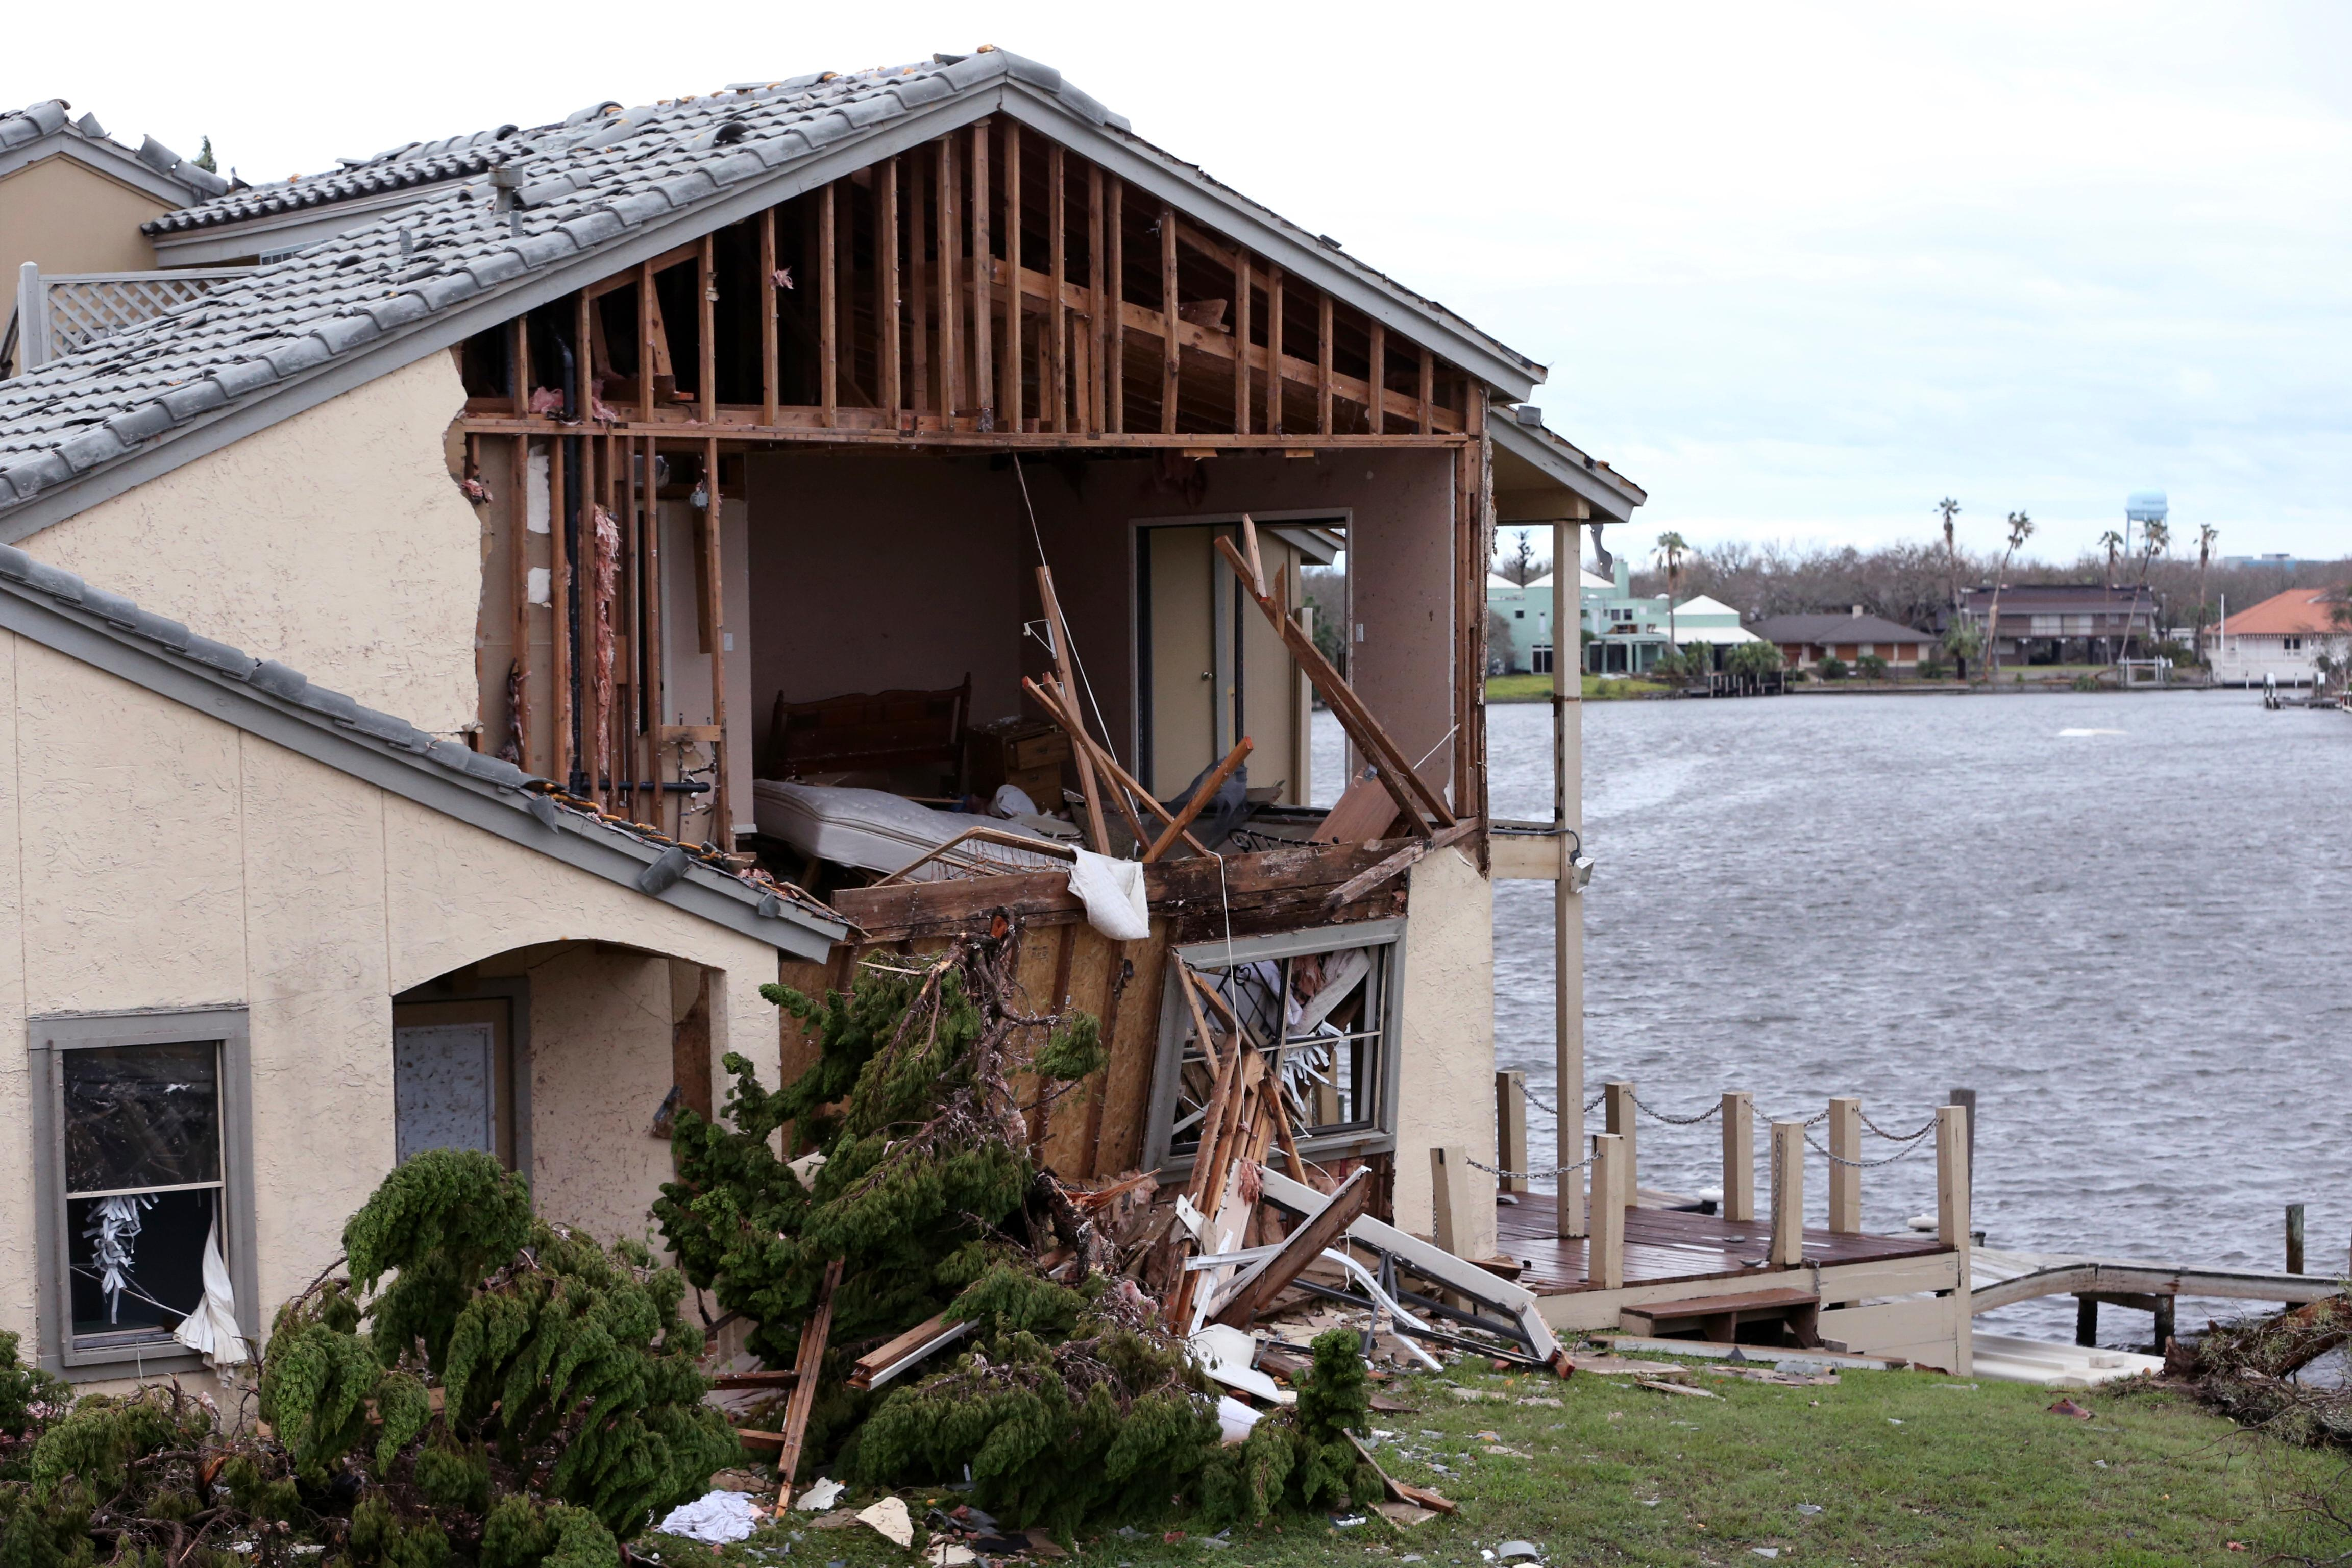 Damage to the Bay House Condominiums is shown in Rockport, Texas in the wake of Hurricane Harvey on Monday, Aug. 28, 2017. (Rachel Denny Clow/Corpus Christi Caller-Times via AP)